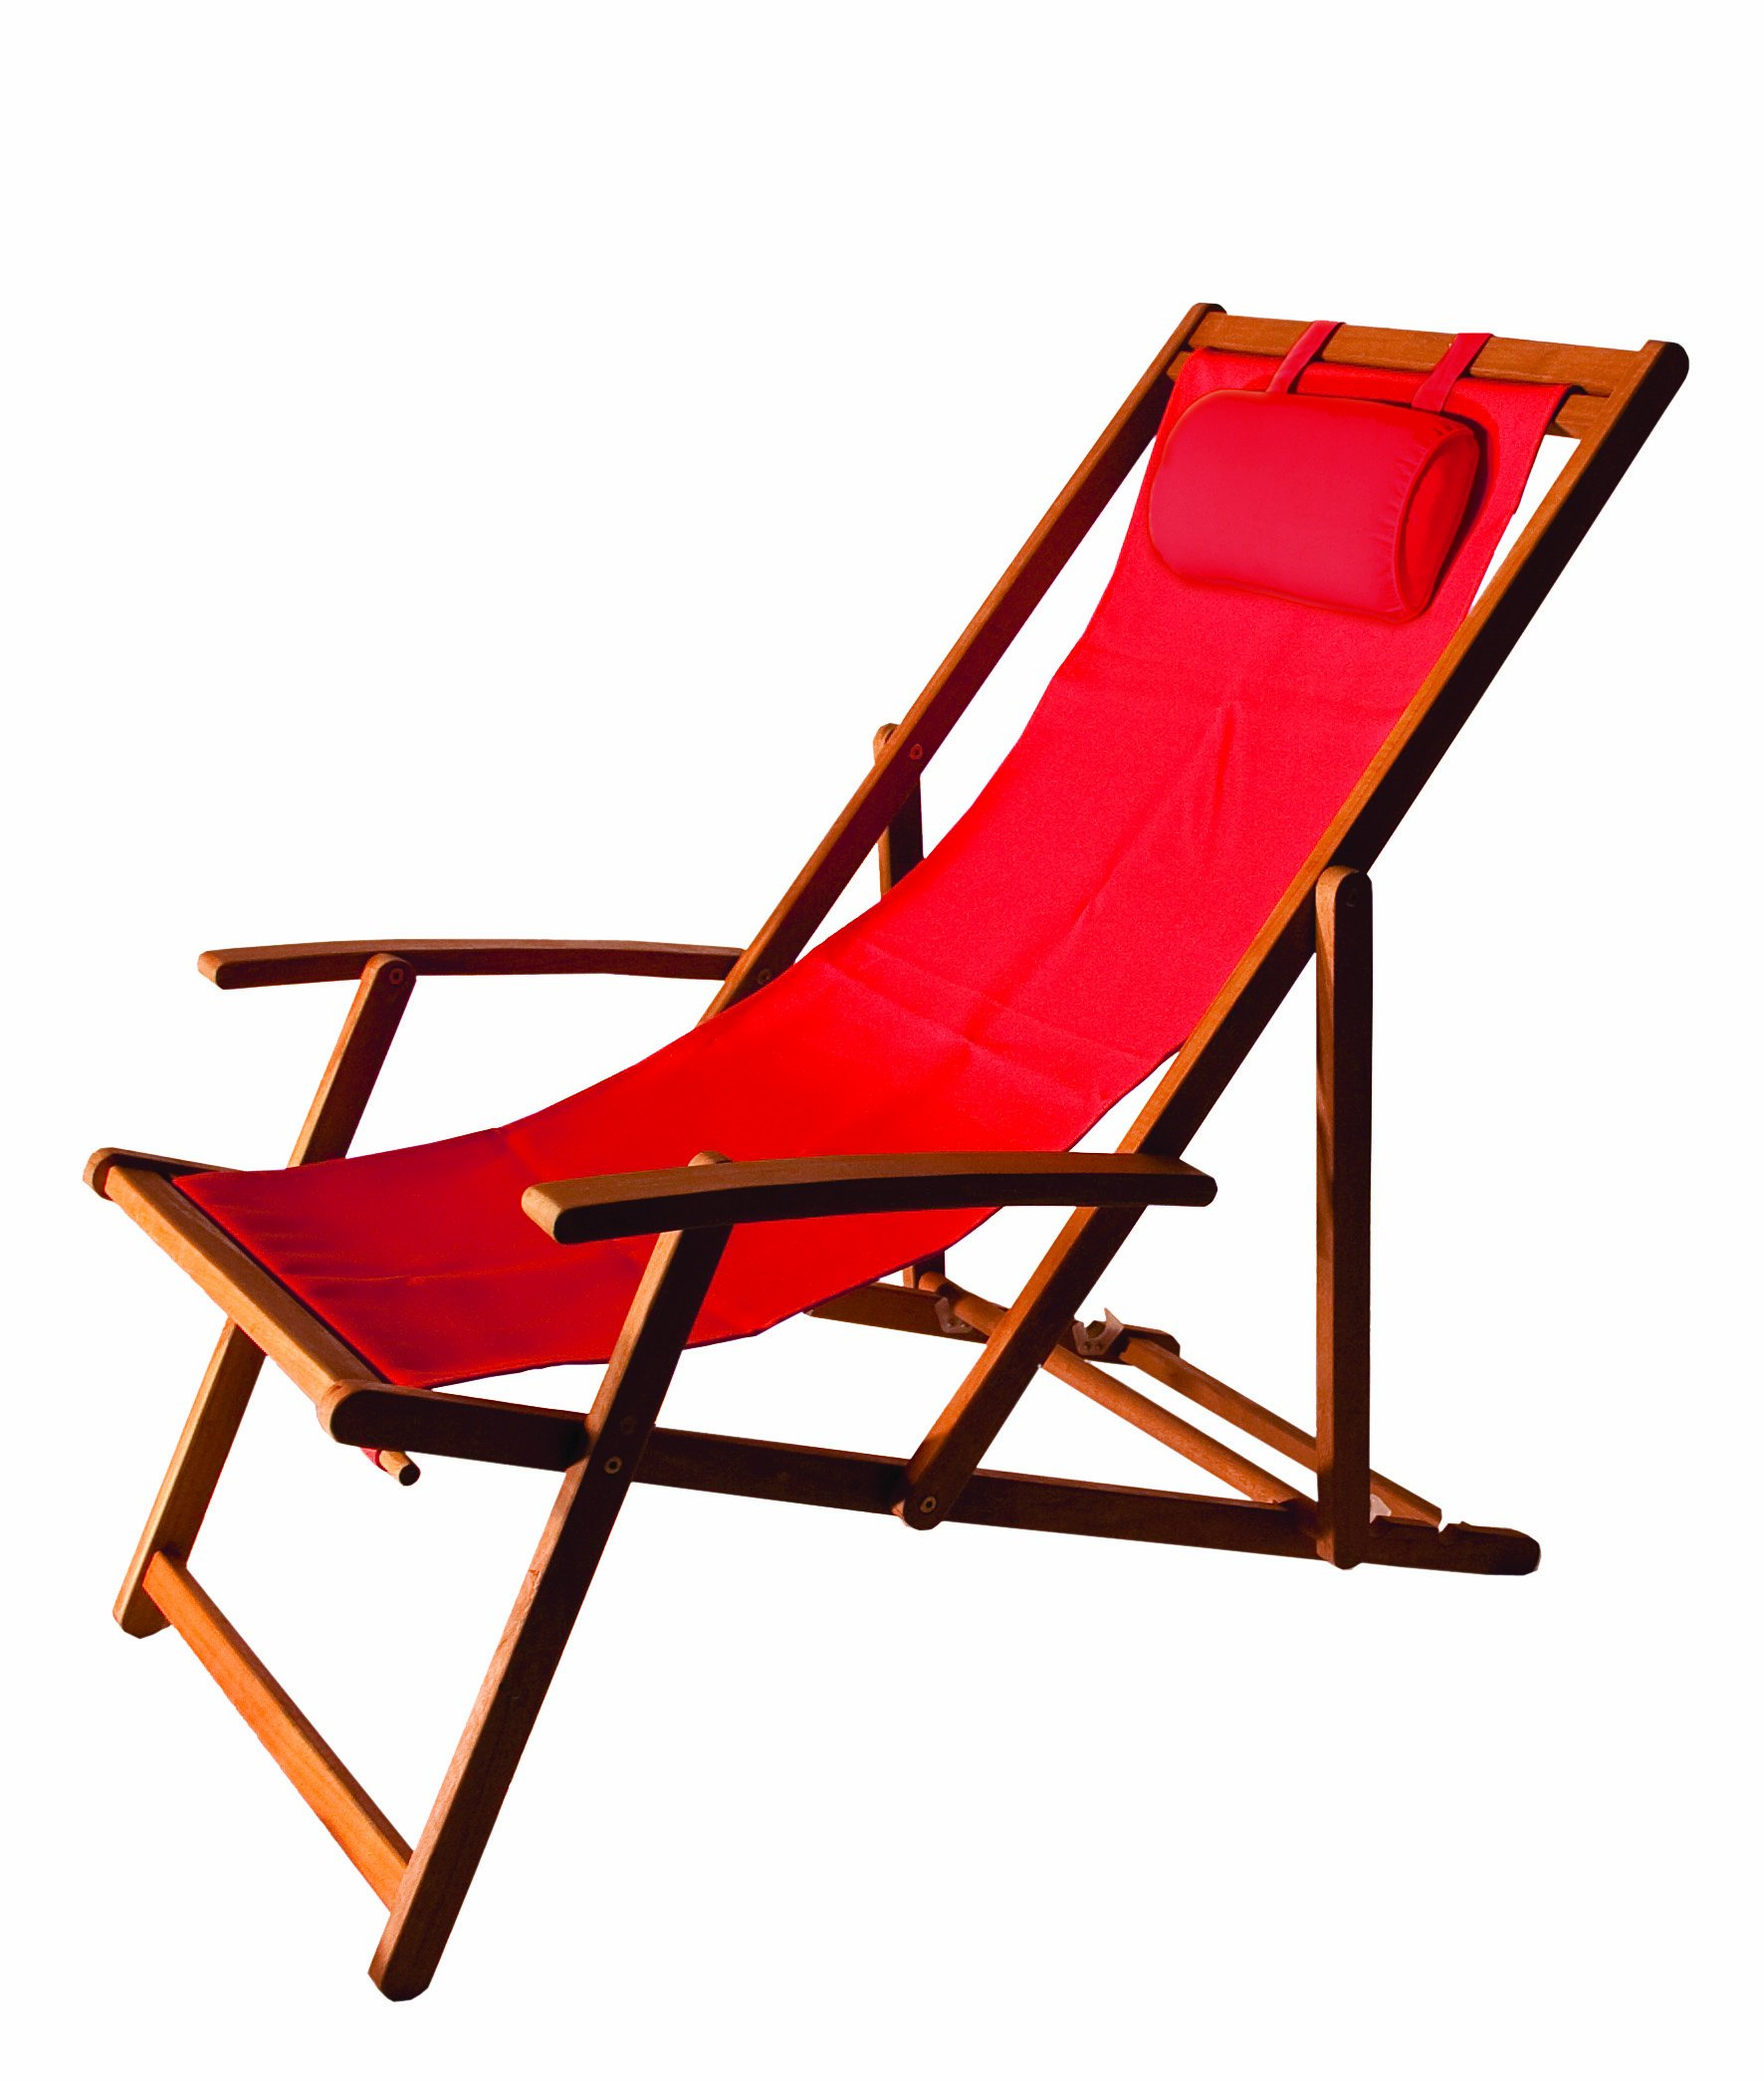 Arboria 880.1303 Foldable Outdoor Wood Sling Chair Eucalyptus Hardwood, Red by Arboria